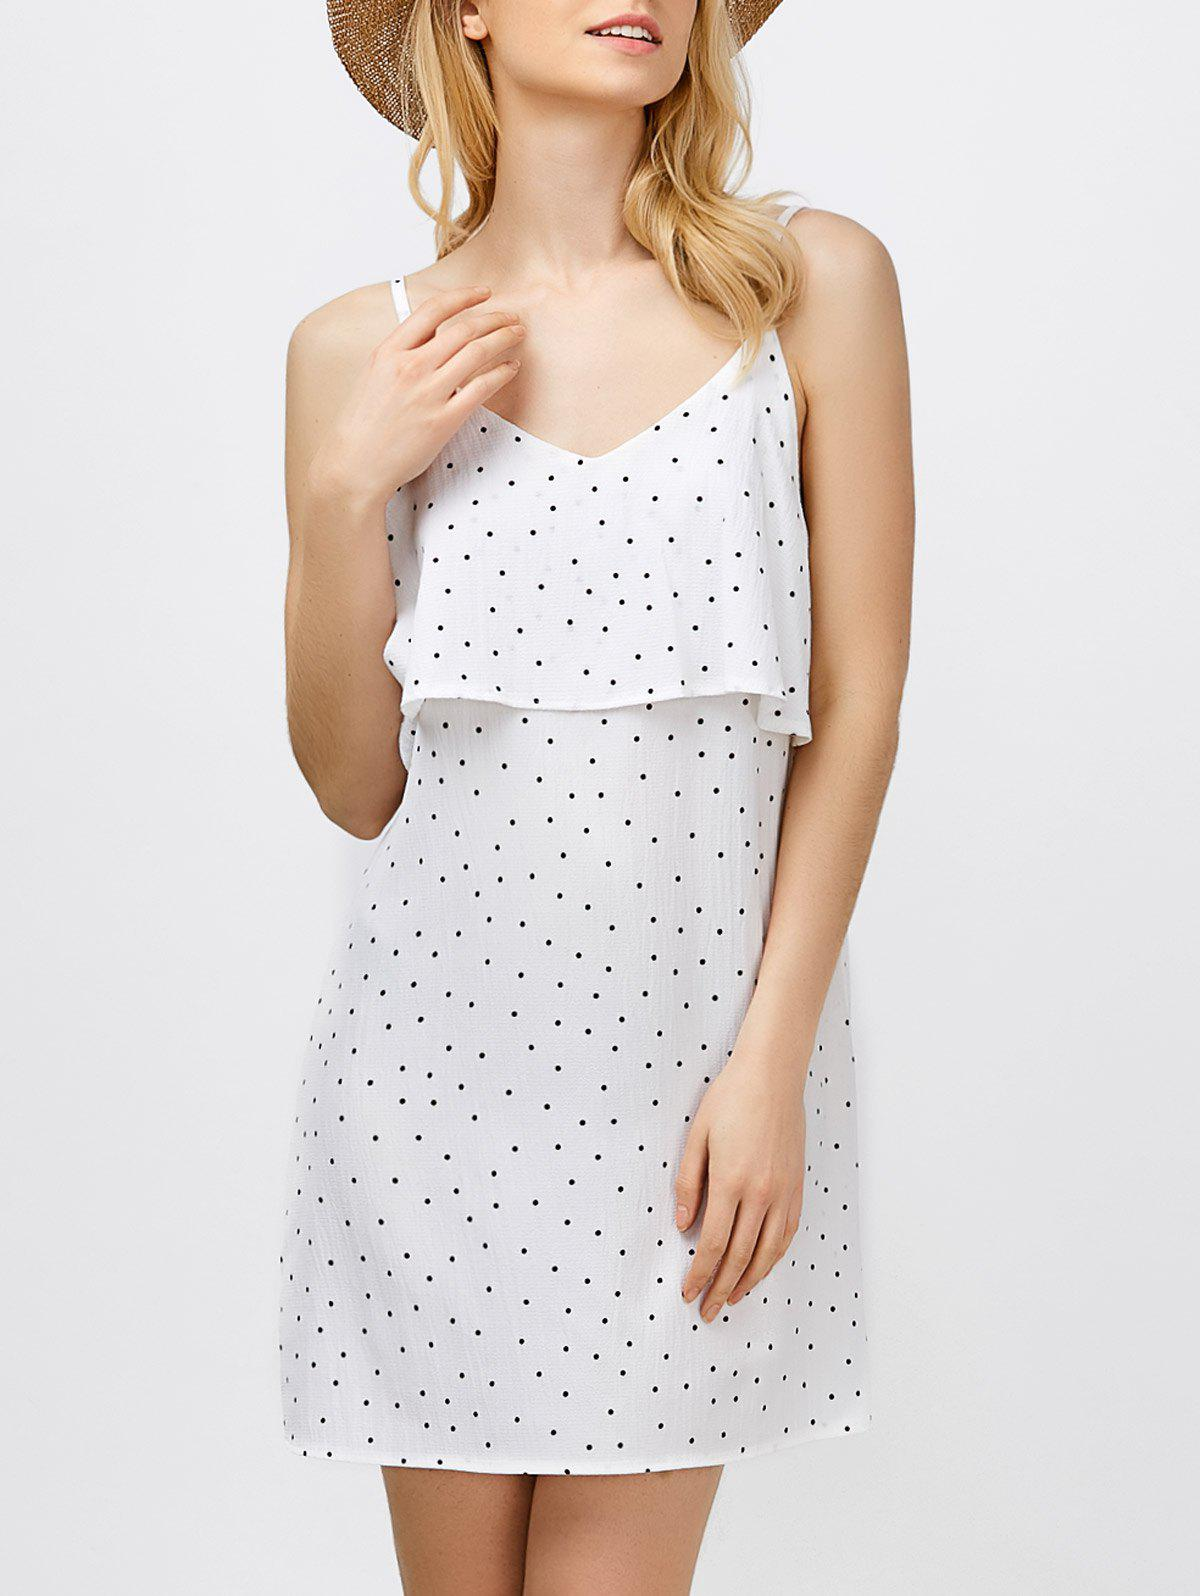 Ruffle Polka Dot Mini Slip Dress - Blanc S